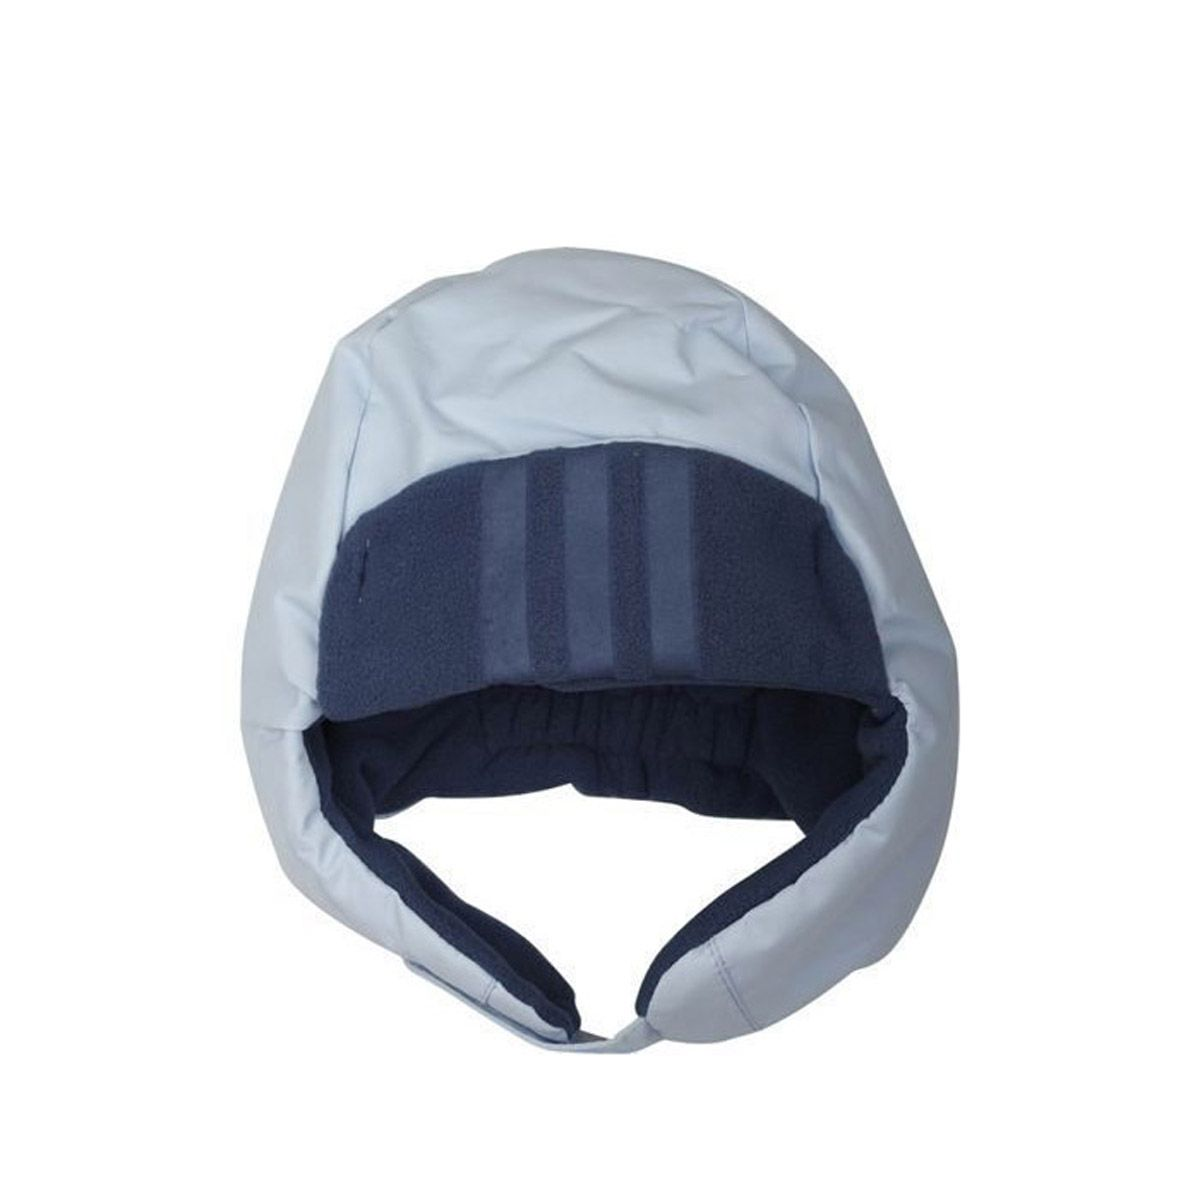 ADIDAS Infants Cap, blue